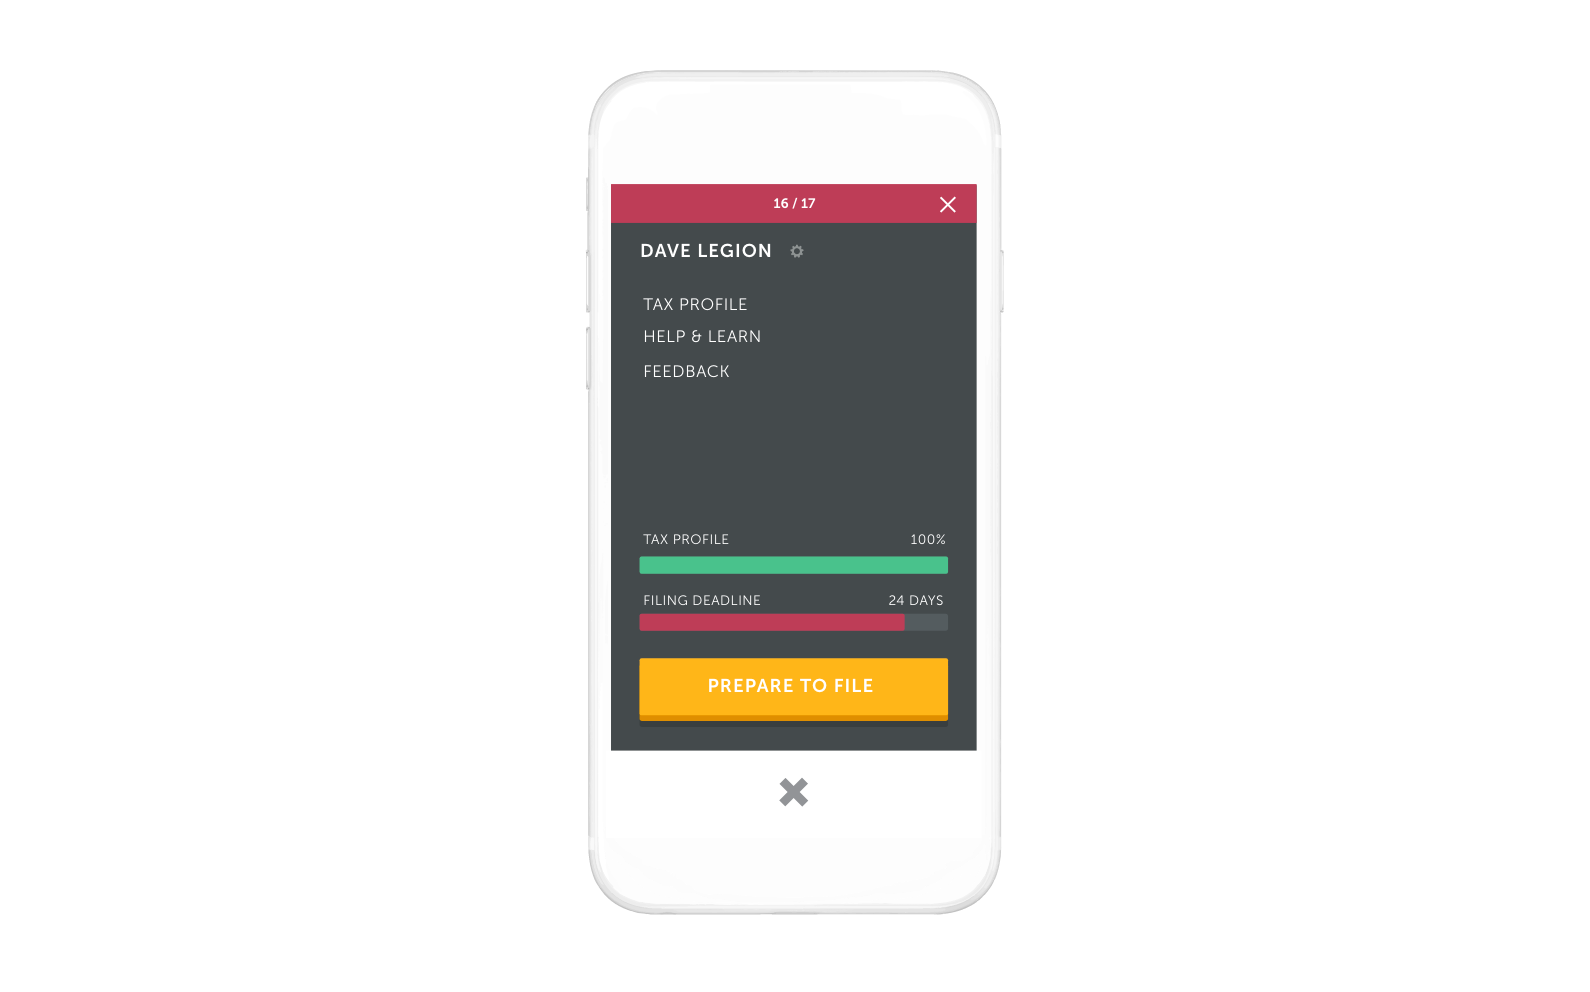 TAXO'D app - Complete your tax profile in 5 minutes